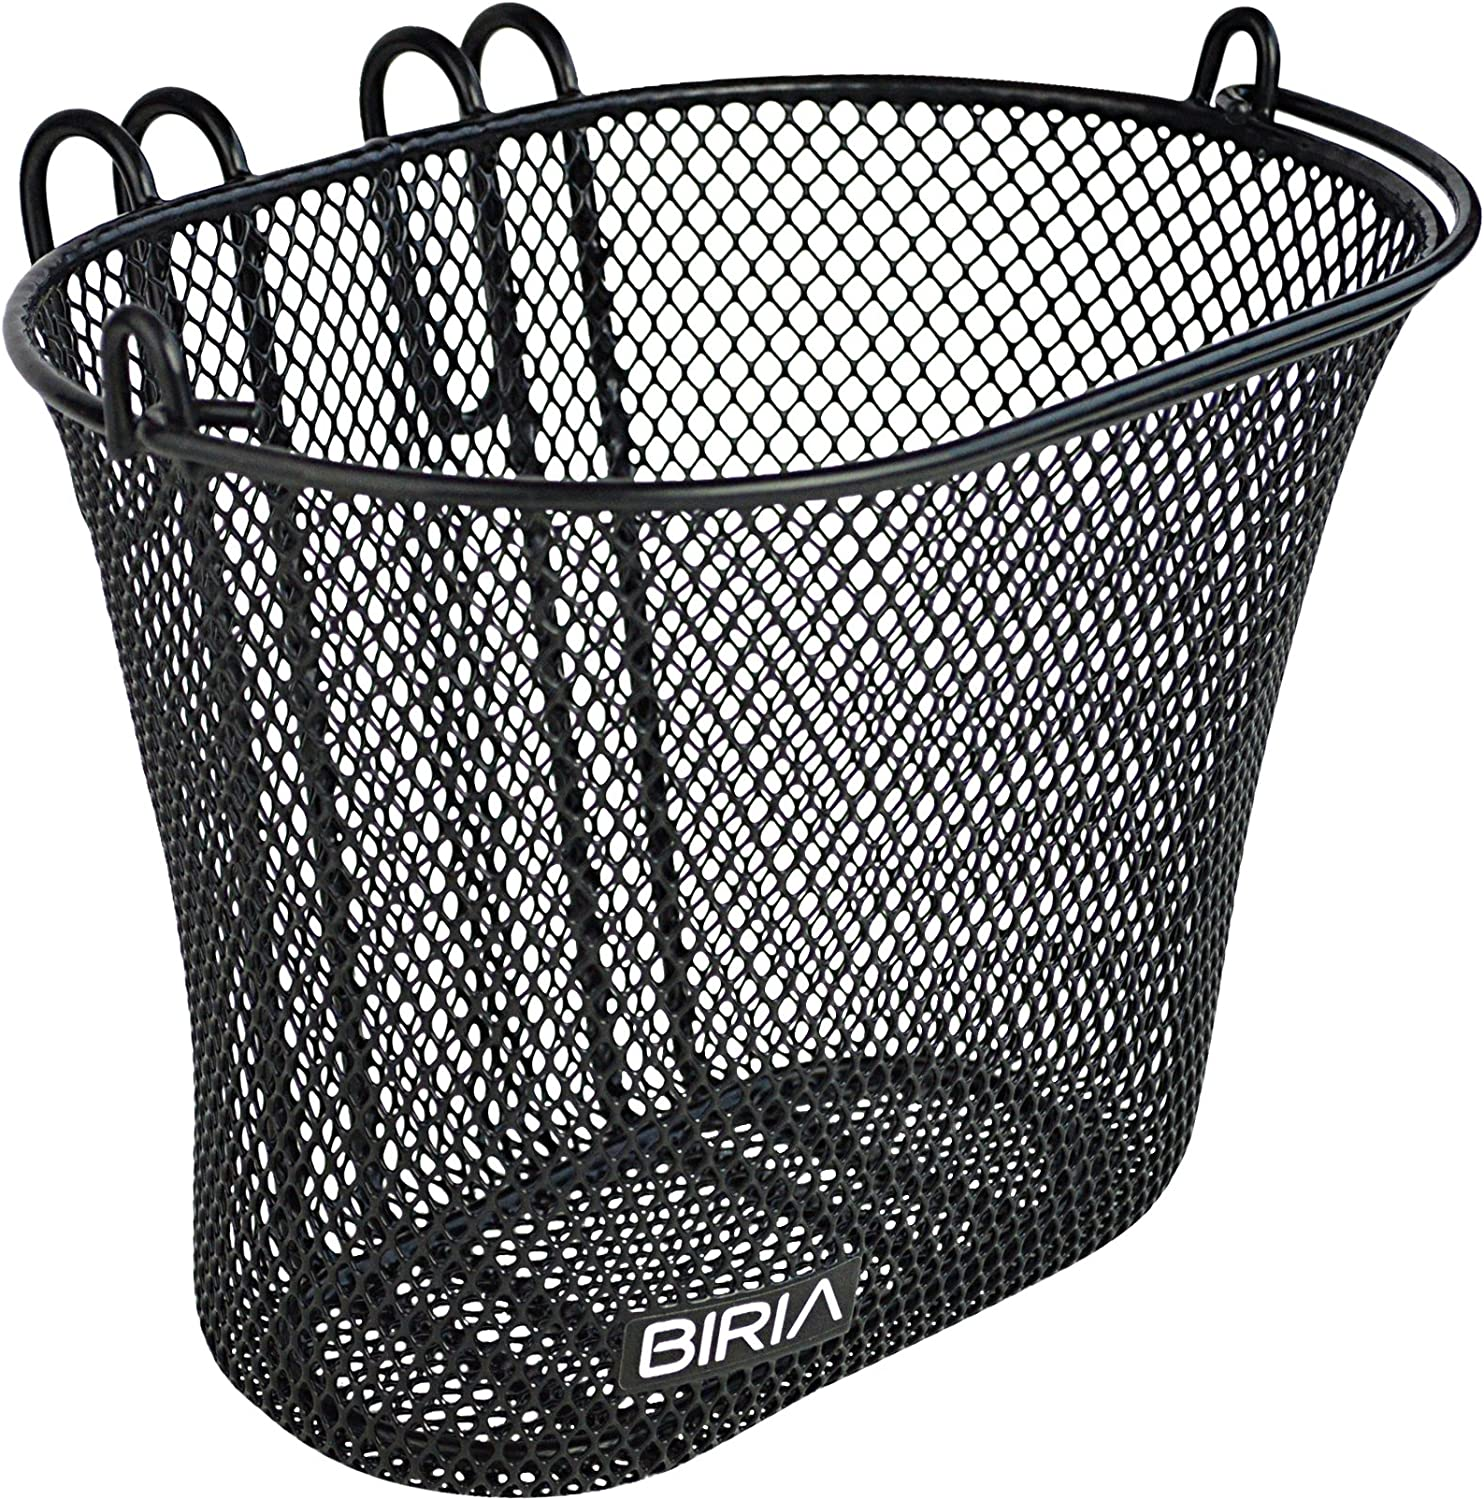 BIRIA Basket with Hooks Black, Front, Removable, Wire mesh Small, Kids Bicycle Basket, Black